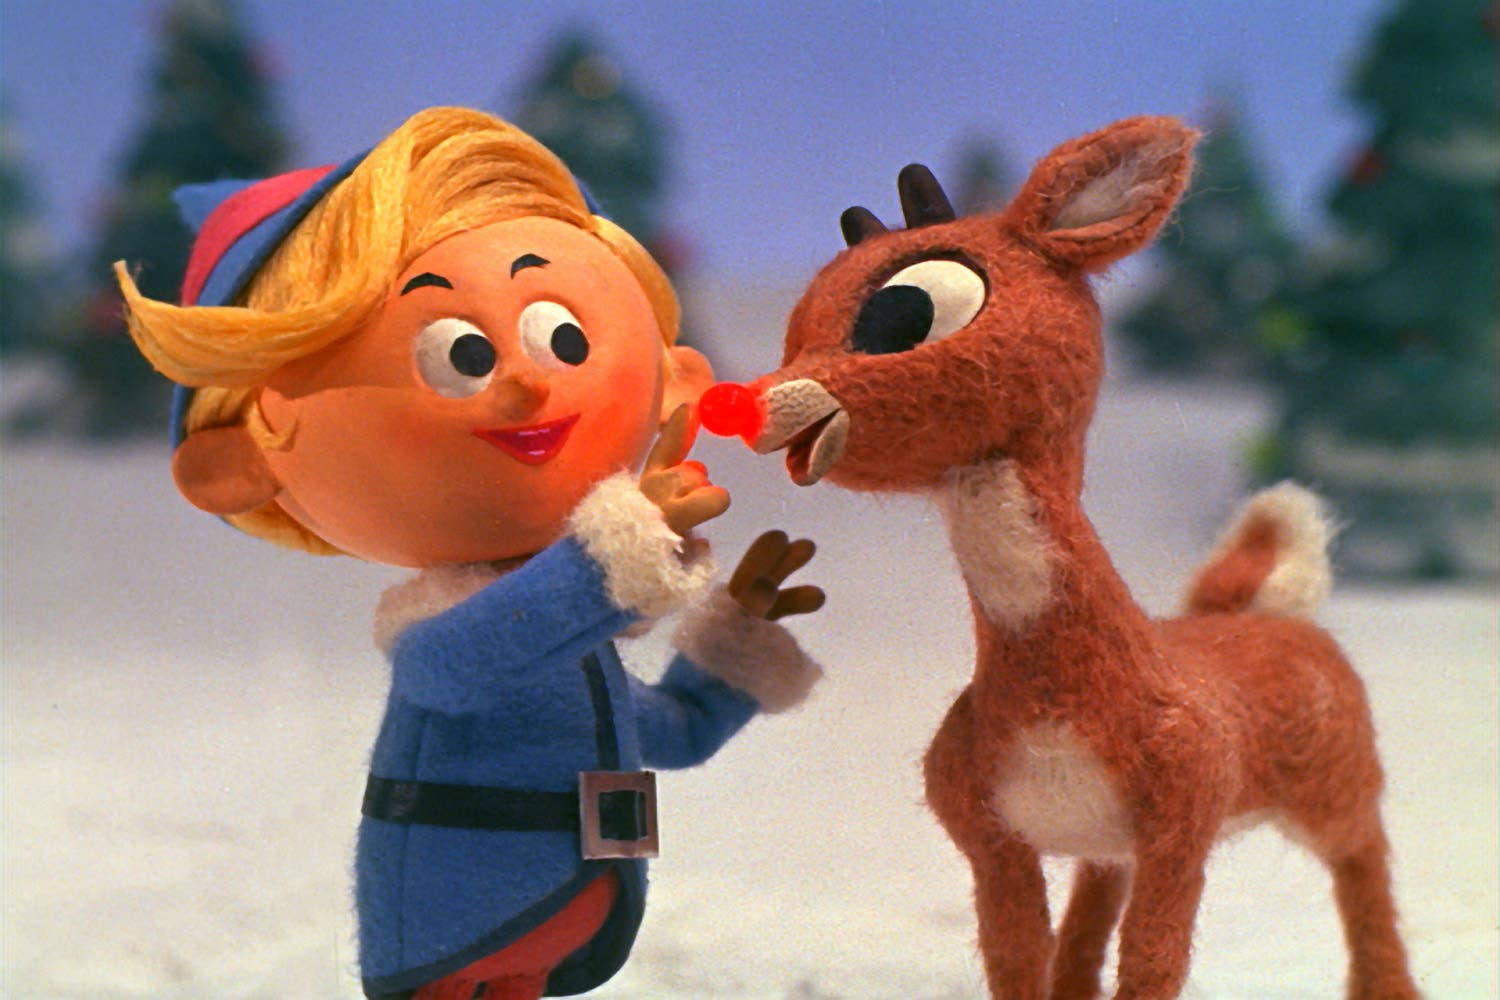 """Hermey the Elf and Rudolph in """"Rudolph the Red-Nosed Reindeer"""" (1964)"""